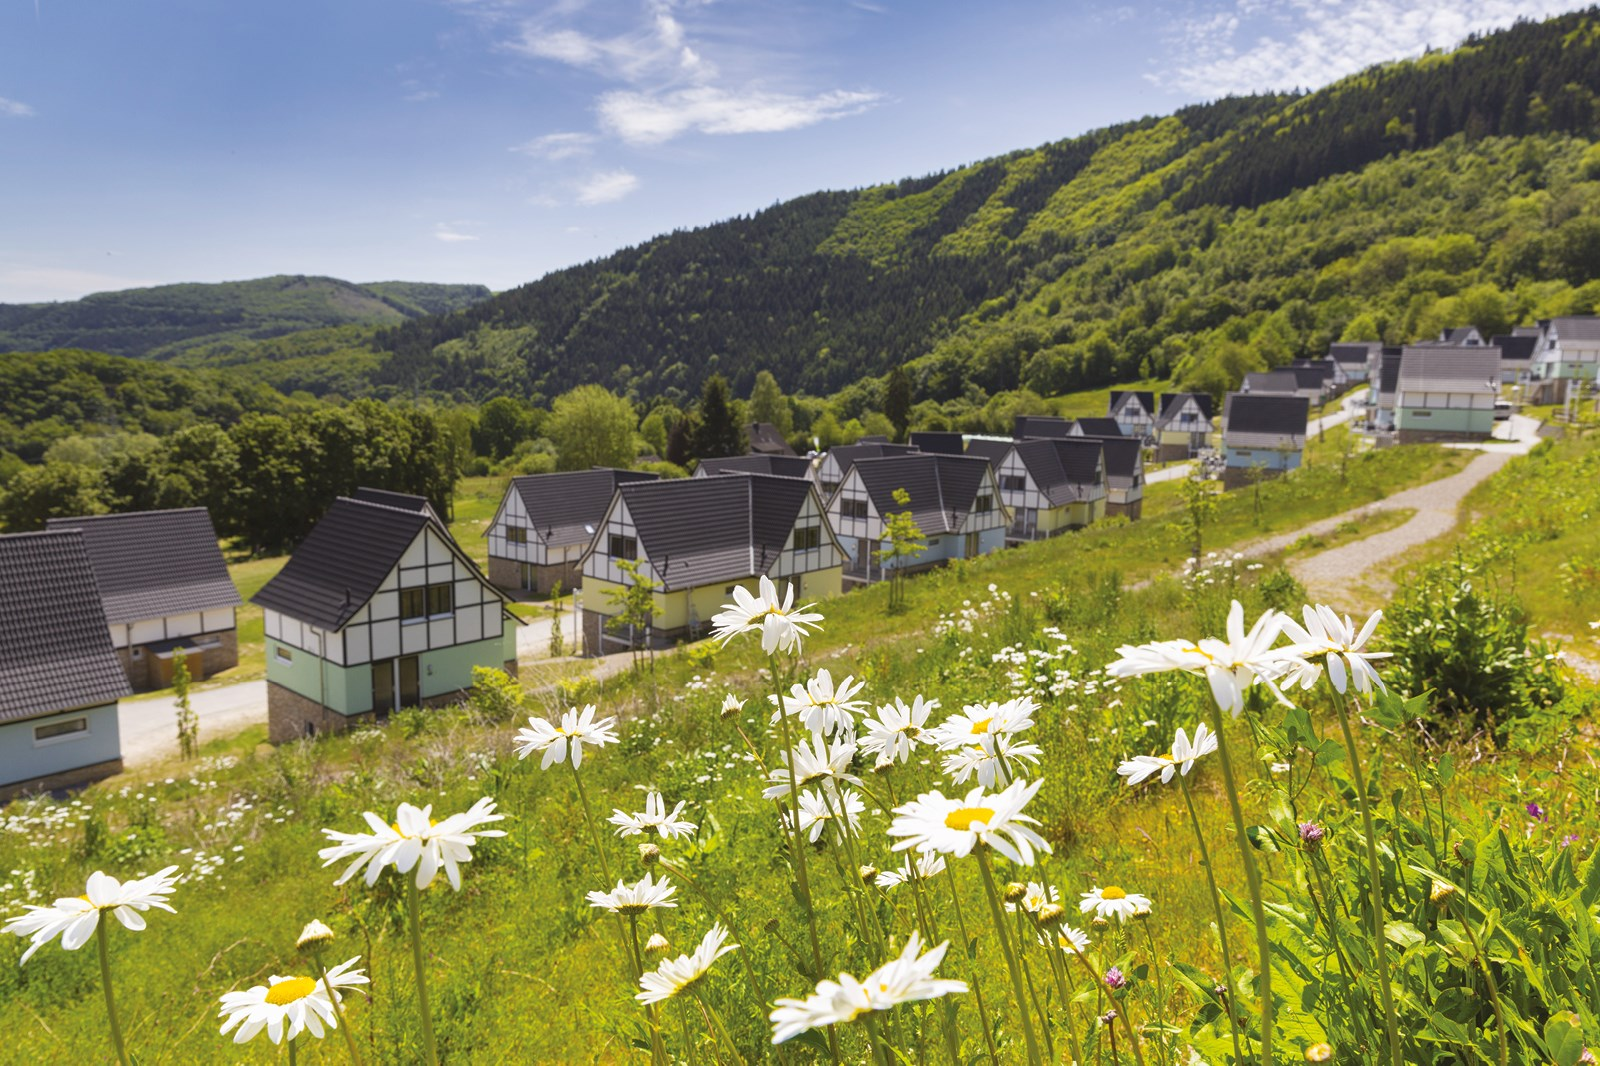 Do you want to experience Resort Eifeler Tor in Heimbach yourself?